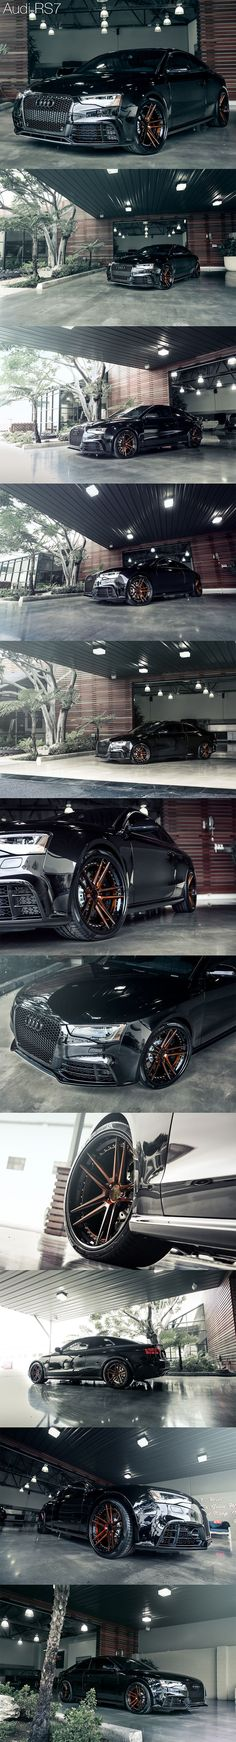 Someone pinned this saying this Audi would be an RS7... I just had to repin it to clarify that this isnt true, its an RS5..!